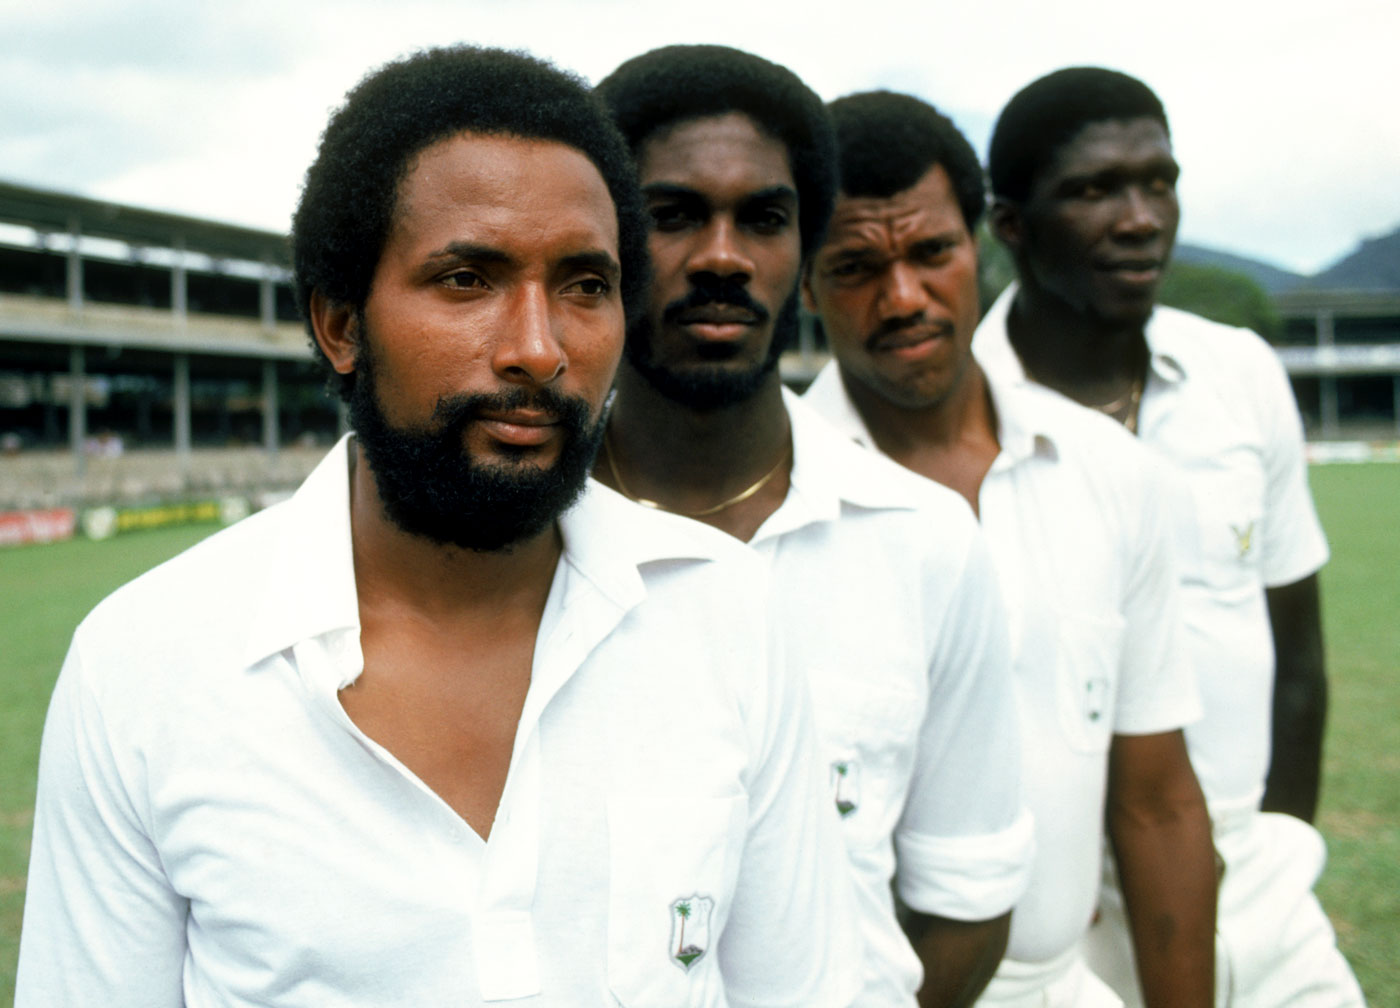 Grow your 'fro (but not too big): Andy Roberts, Michael Holding and Colin Croft look stylishly fierce while Joel Garner leaves the intimidation to his bowling